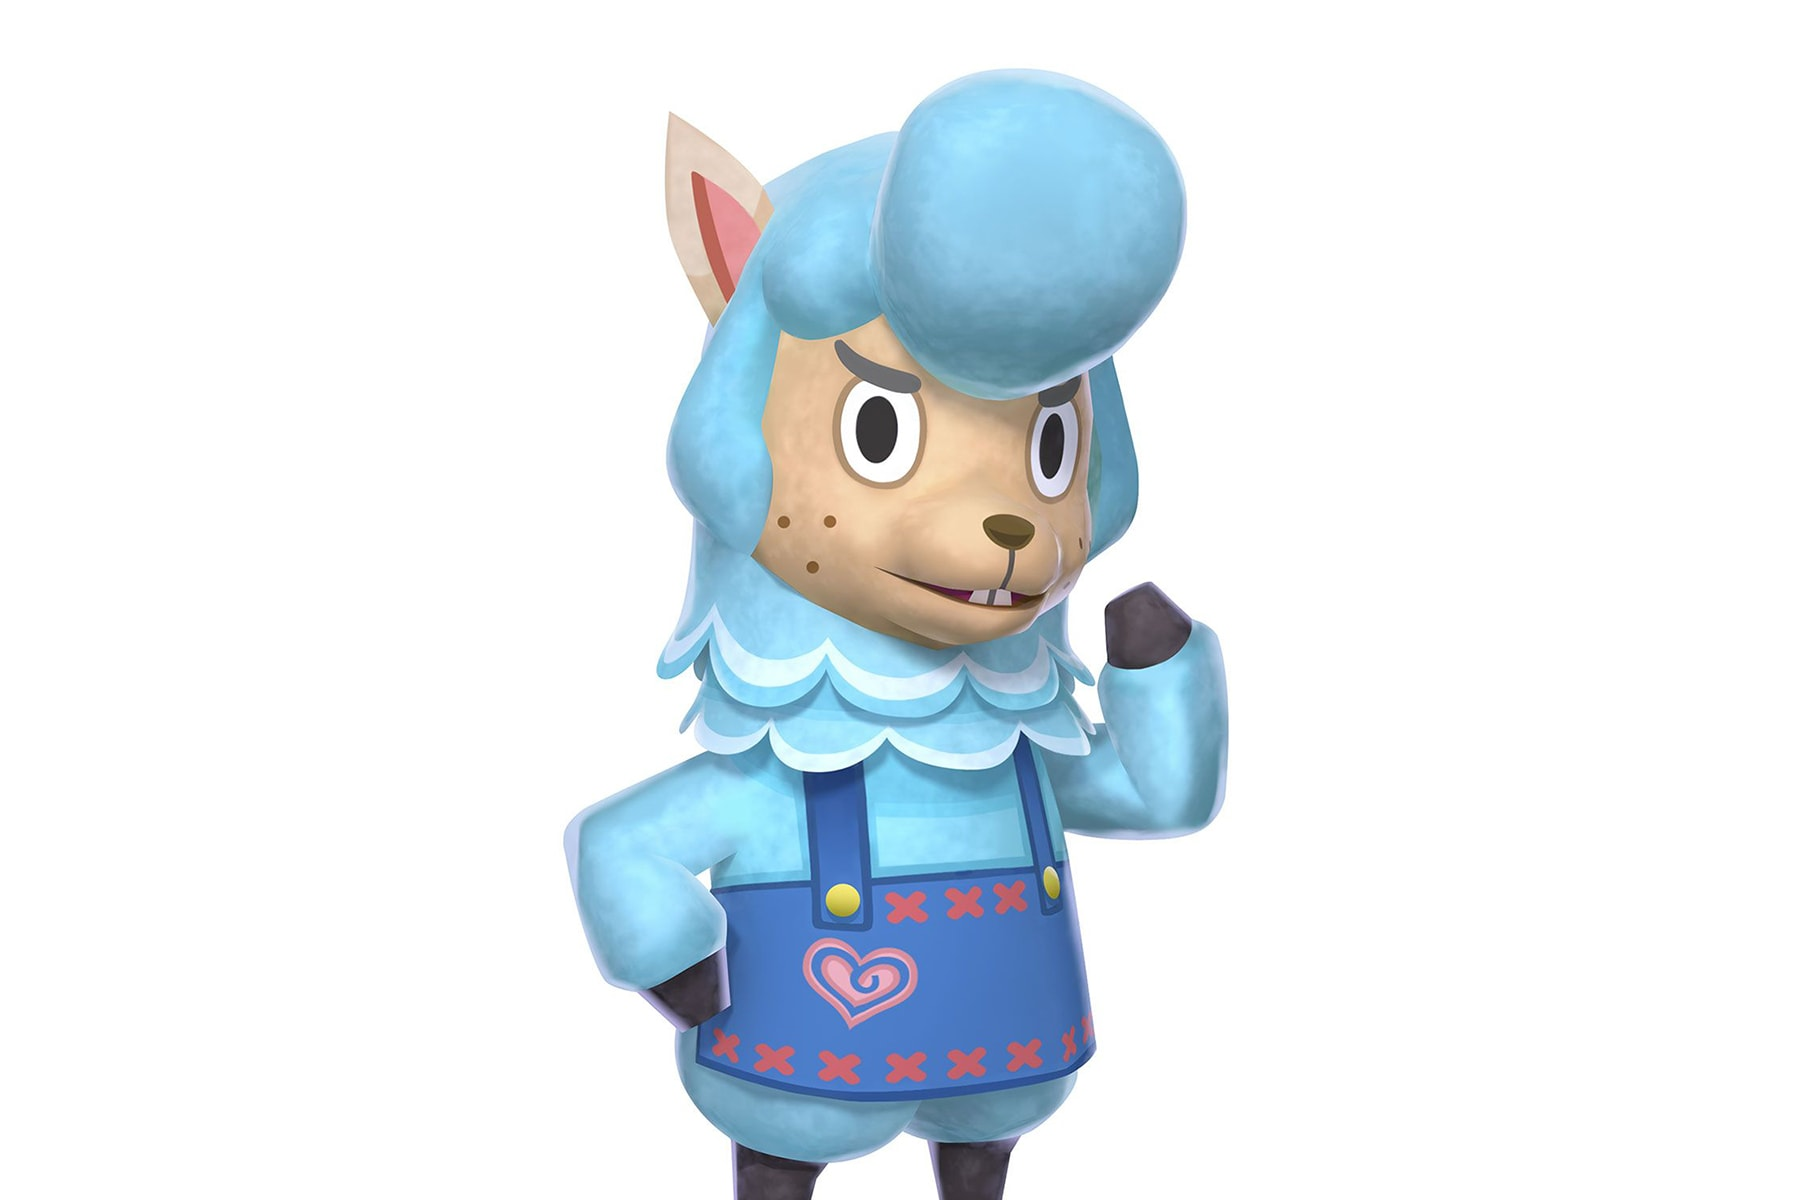 Cyrus animal crossing new horizons